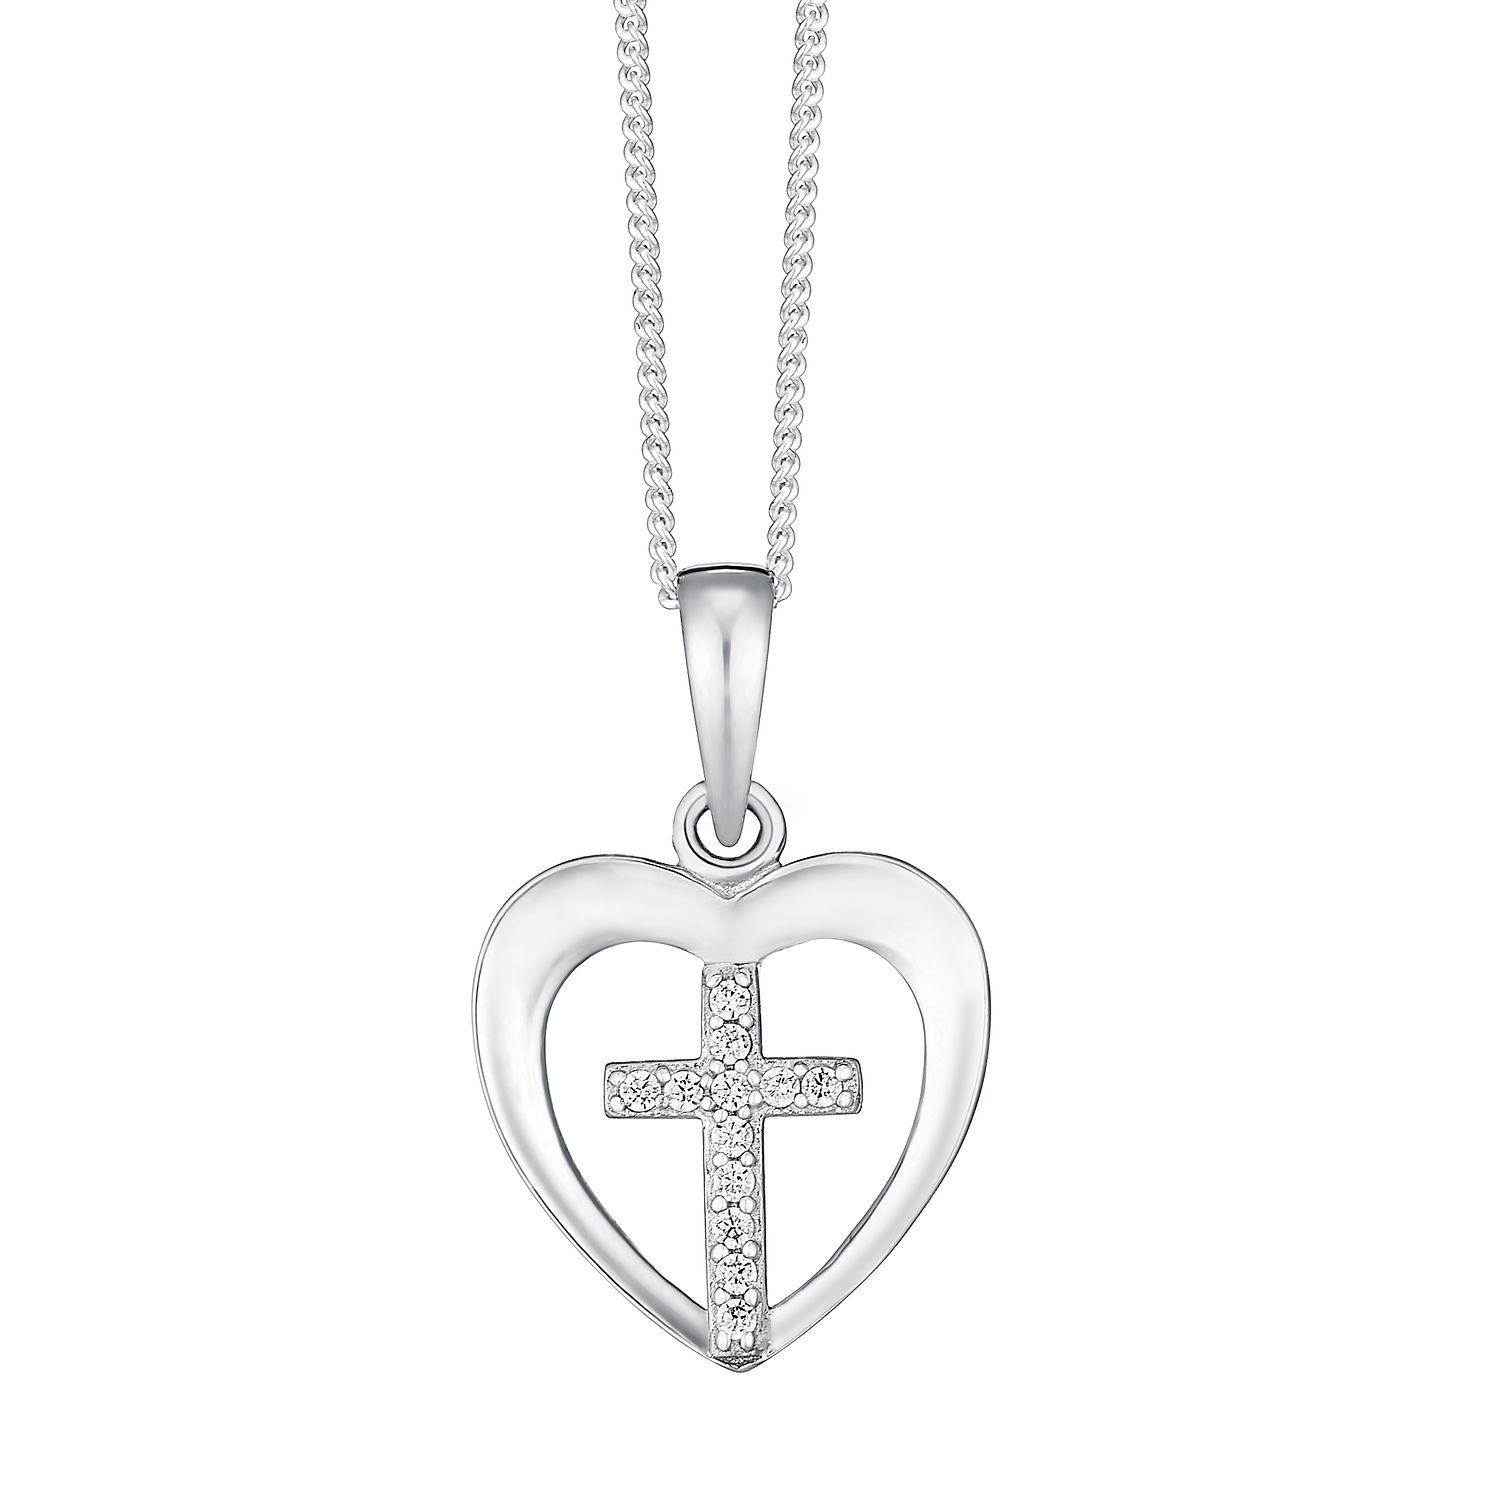 Sterling Silver & Crystal Heart With Cross Pendant - Product number 3737993